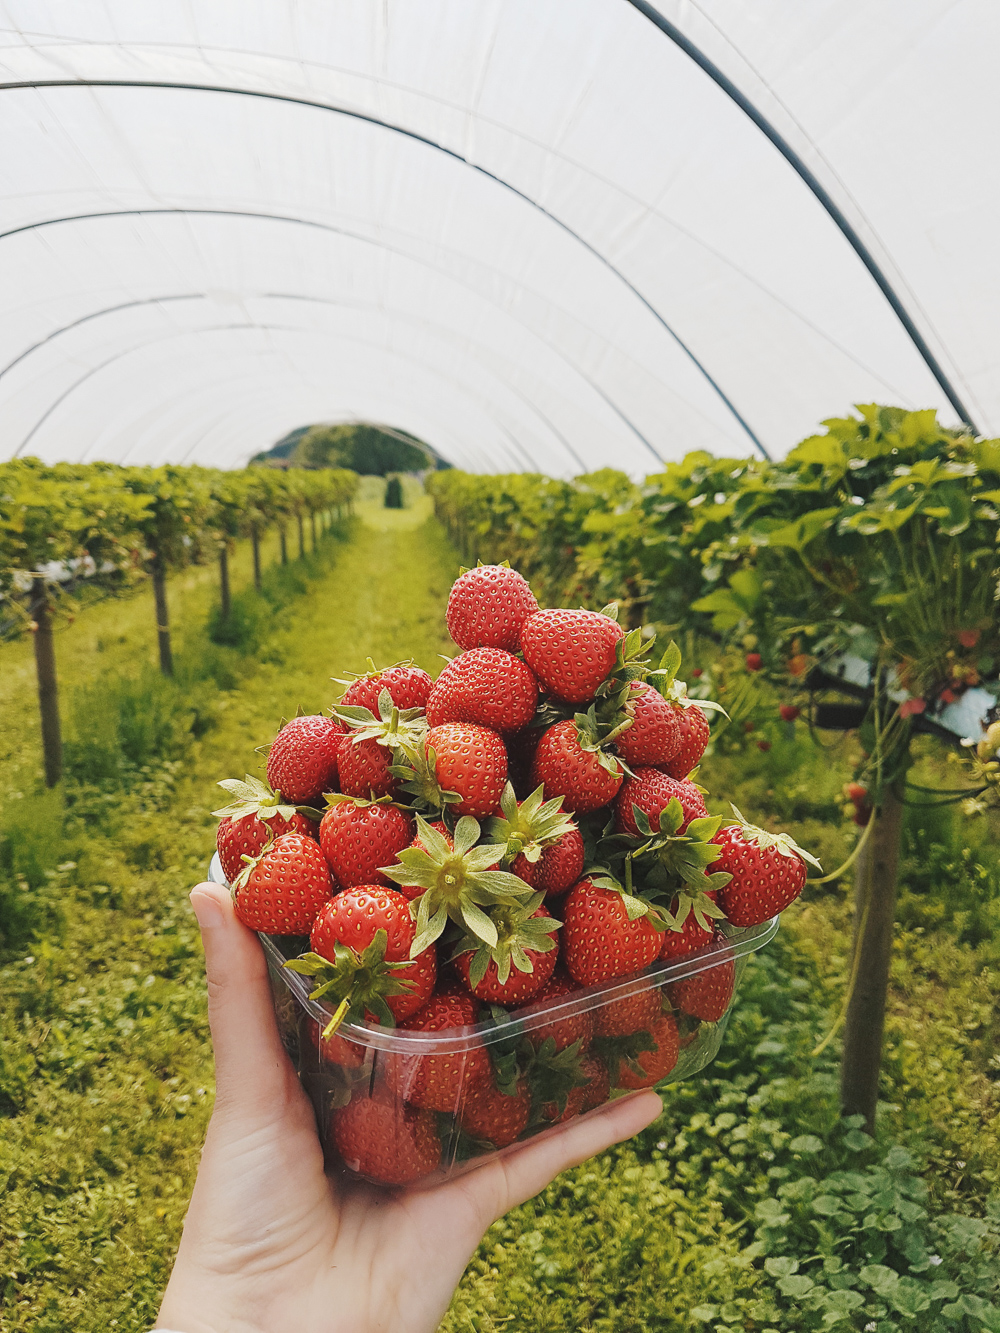 Strawberries from PYO Farm